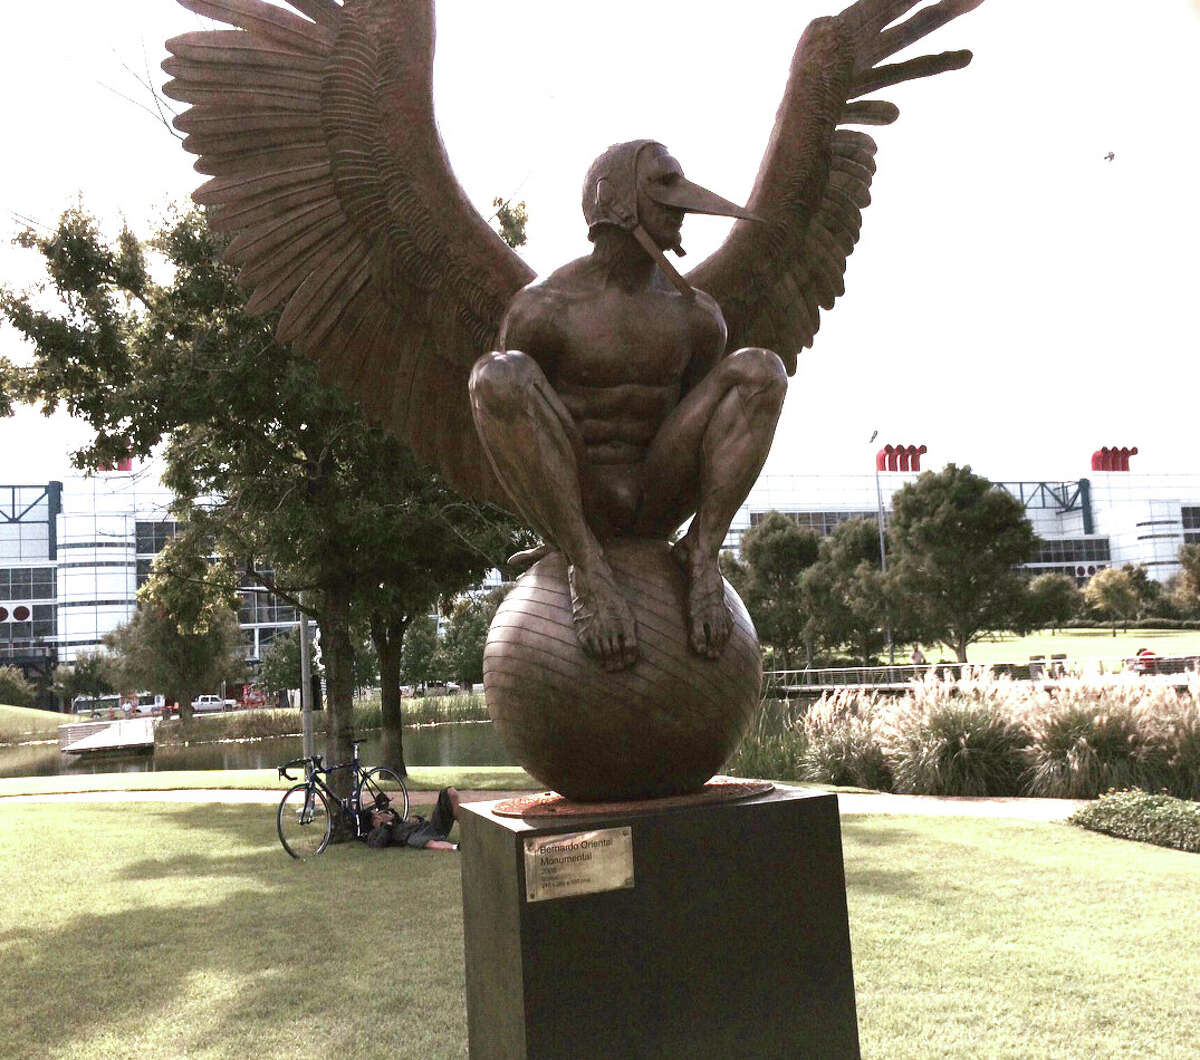 This bronze sculpture, Oriental Bernard, by Mexican artist Jorge Marin, is on display at Discovery Green, Sept. 24, 2014. (Carol Christian / Houston Chronicle)